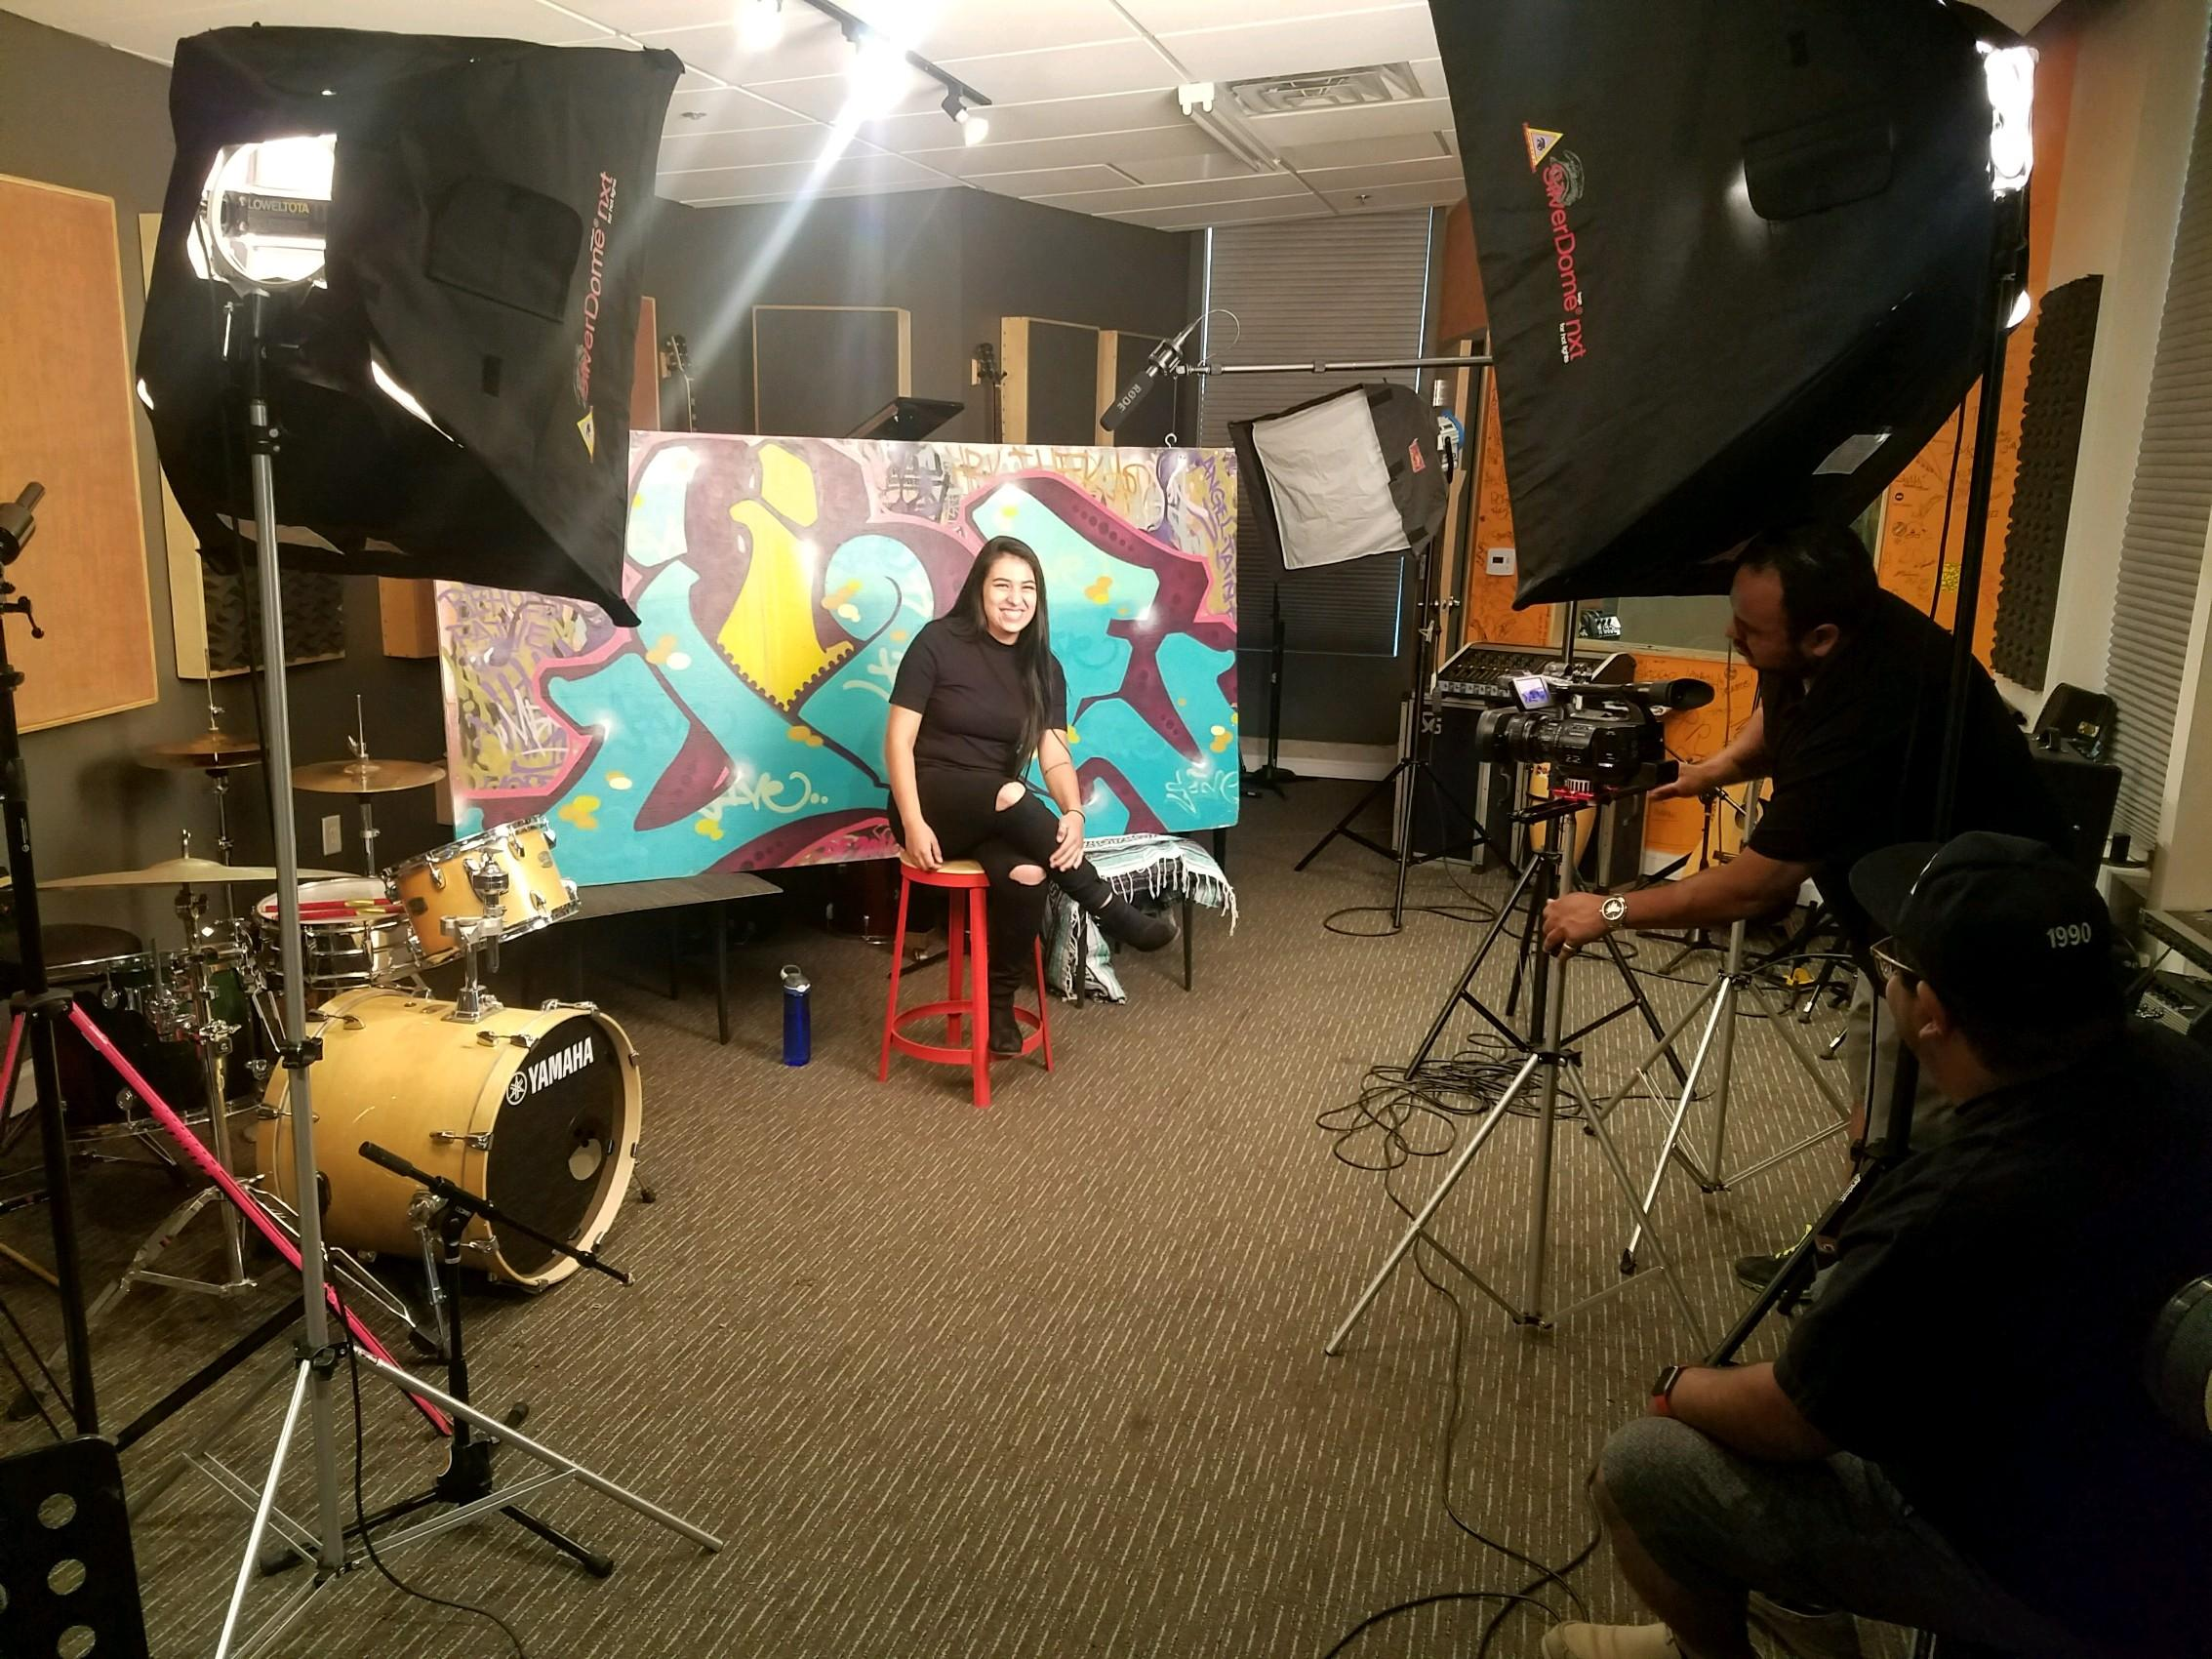 Video company Telideo shooting Youth On Record student inside the YOR studio